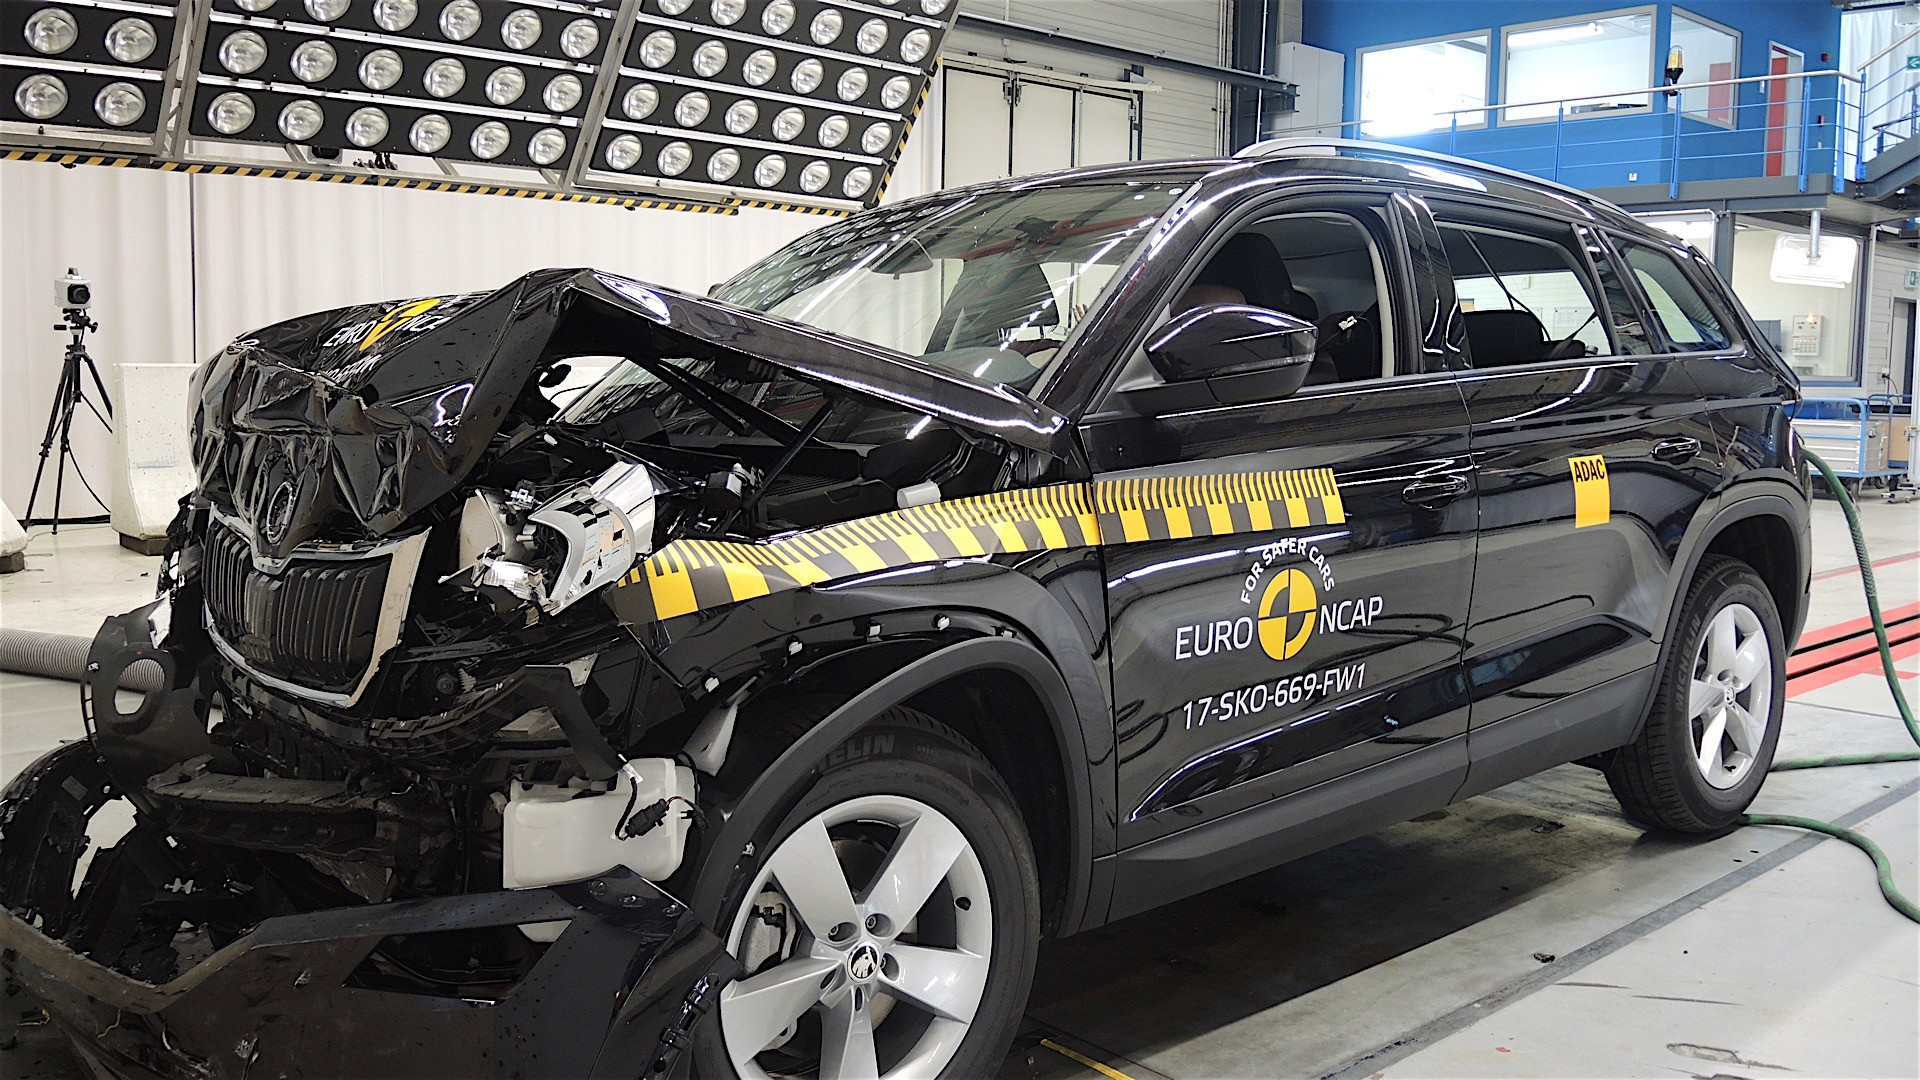 Euro NCAP crash tests may 2017 (3)